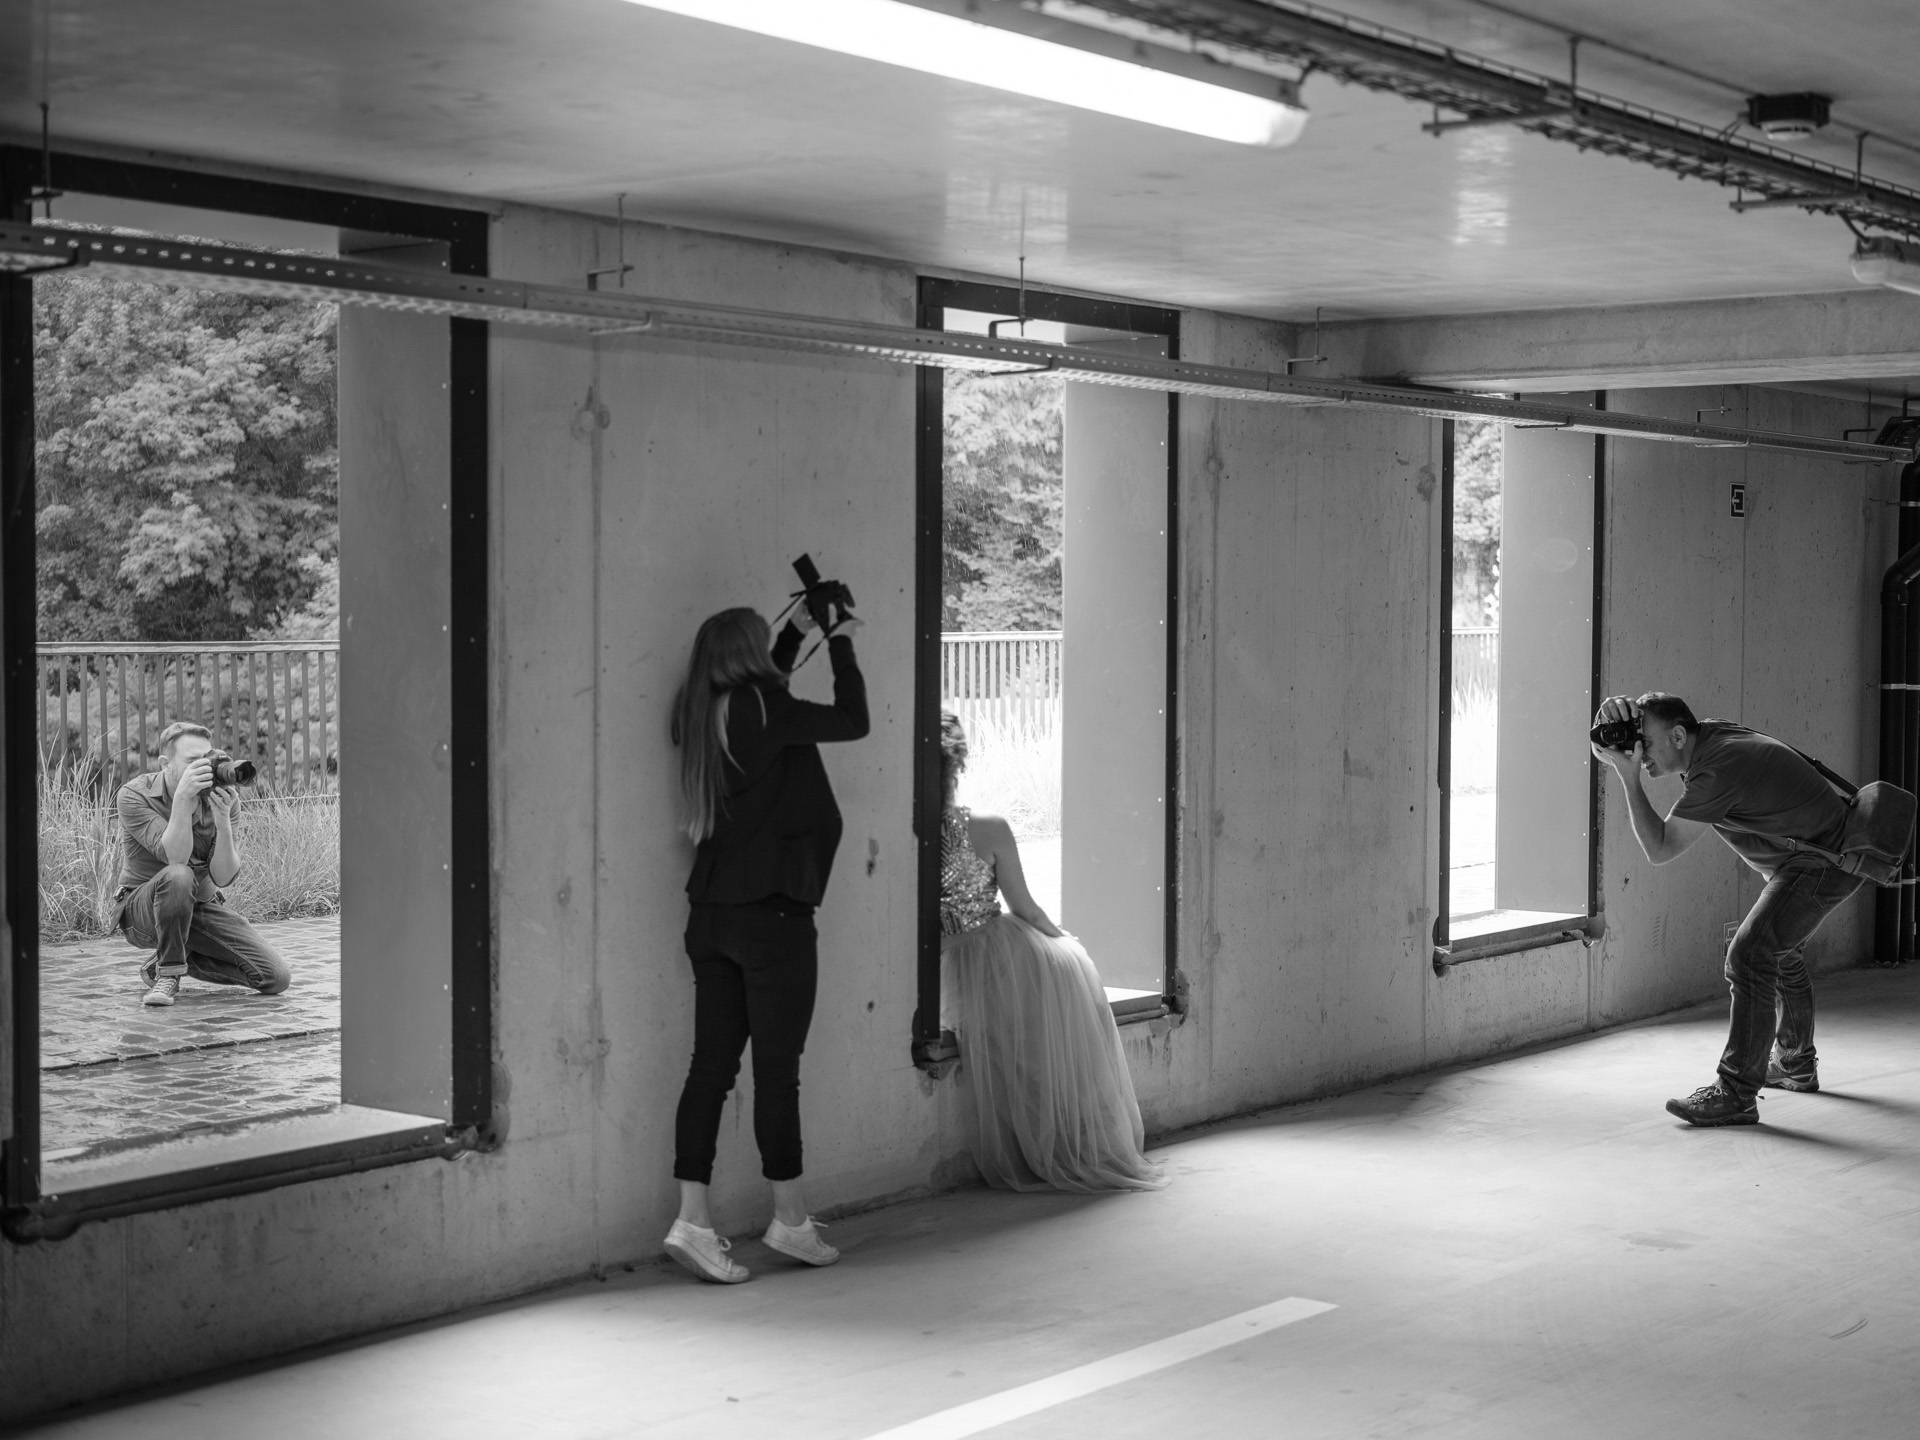 From left to right: Jef taking a behind the scenes shot - Laura looking for a creative angle - Jasmin being her elegant self - Frank looking for his next composition